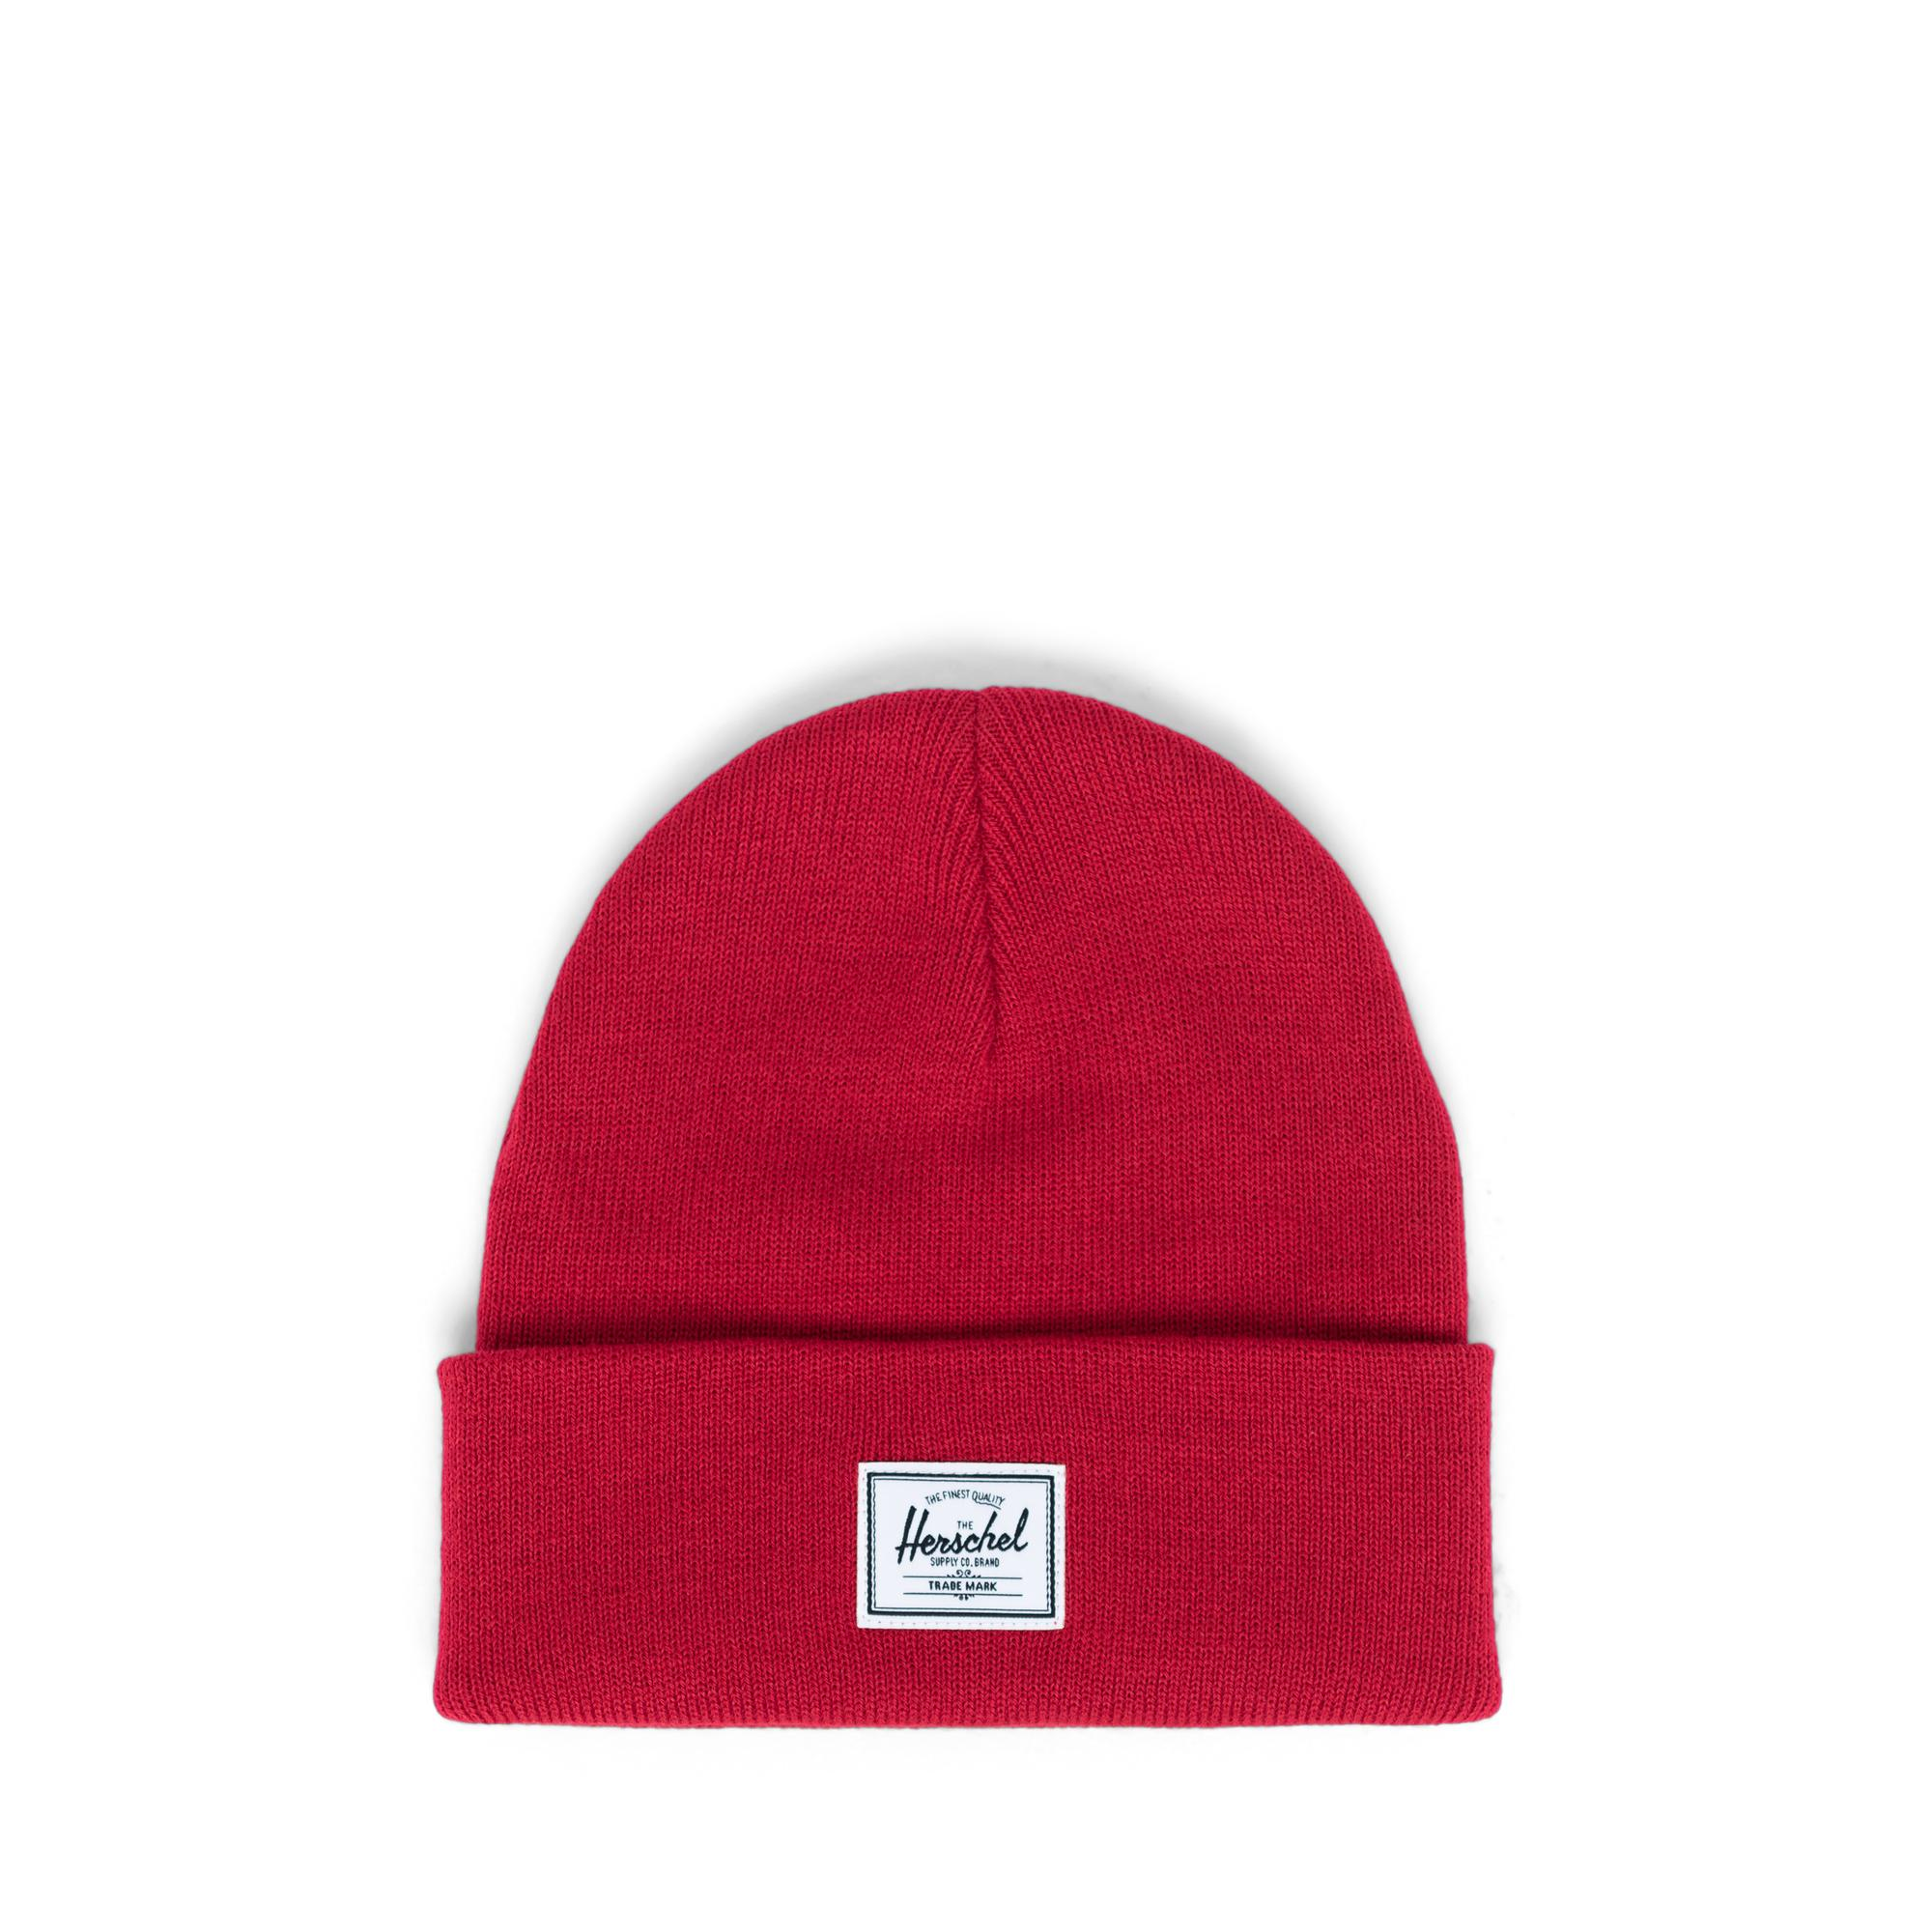 Coca-Cola Beanie Hat 100 Years Red   NEW   FREE SHIPPING